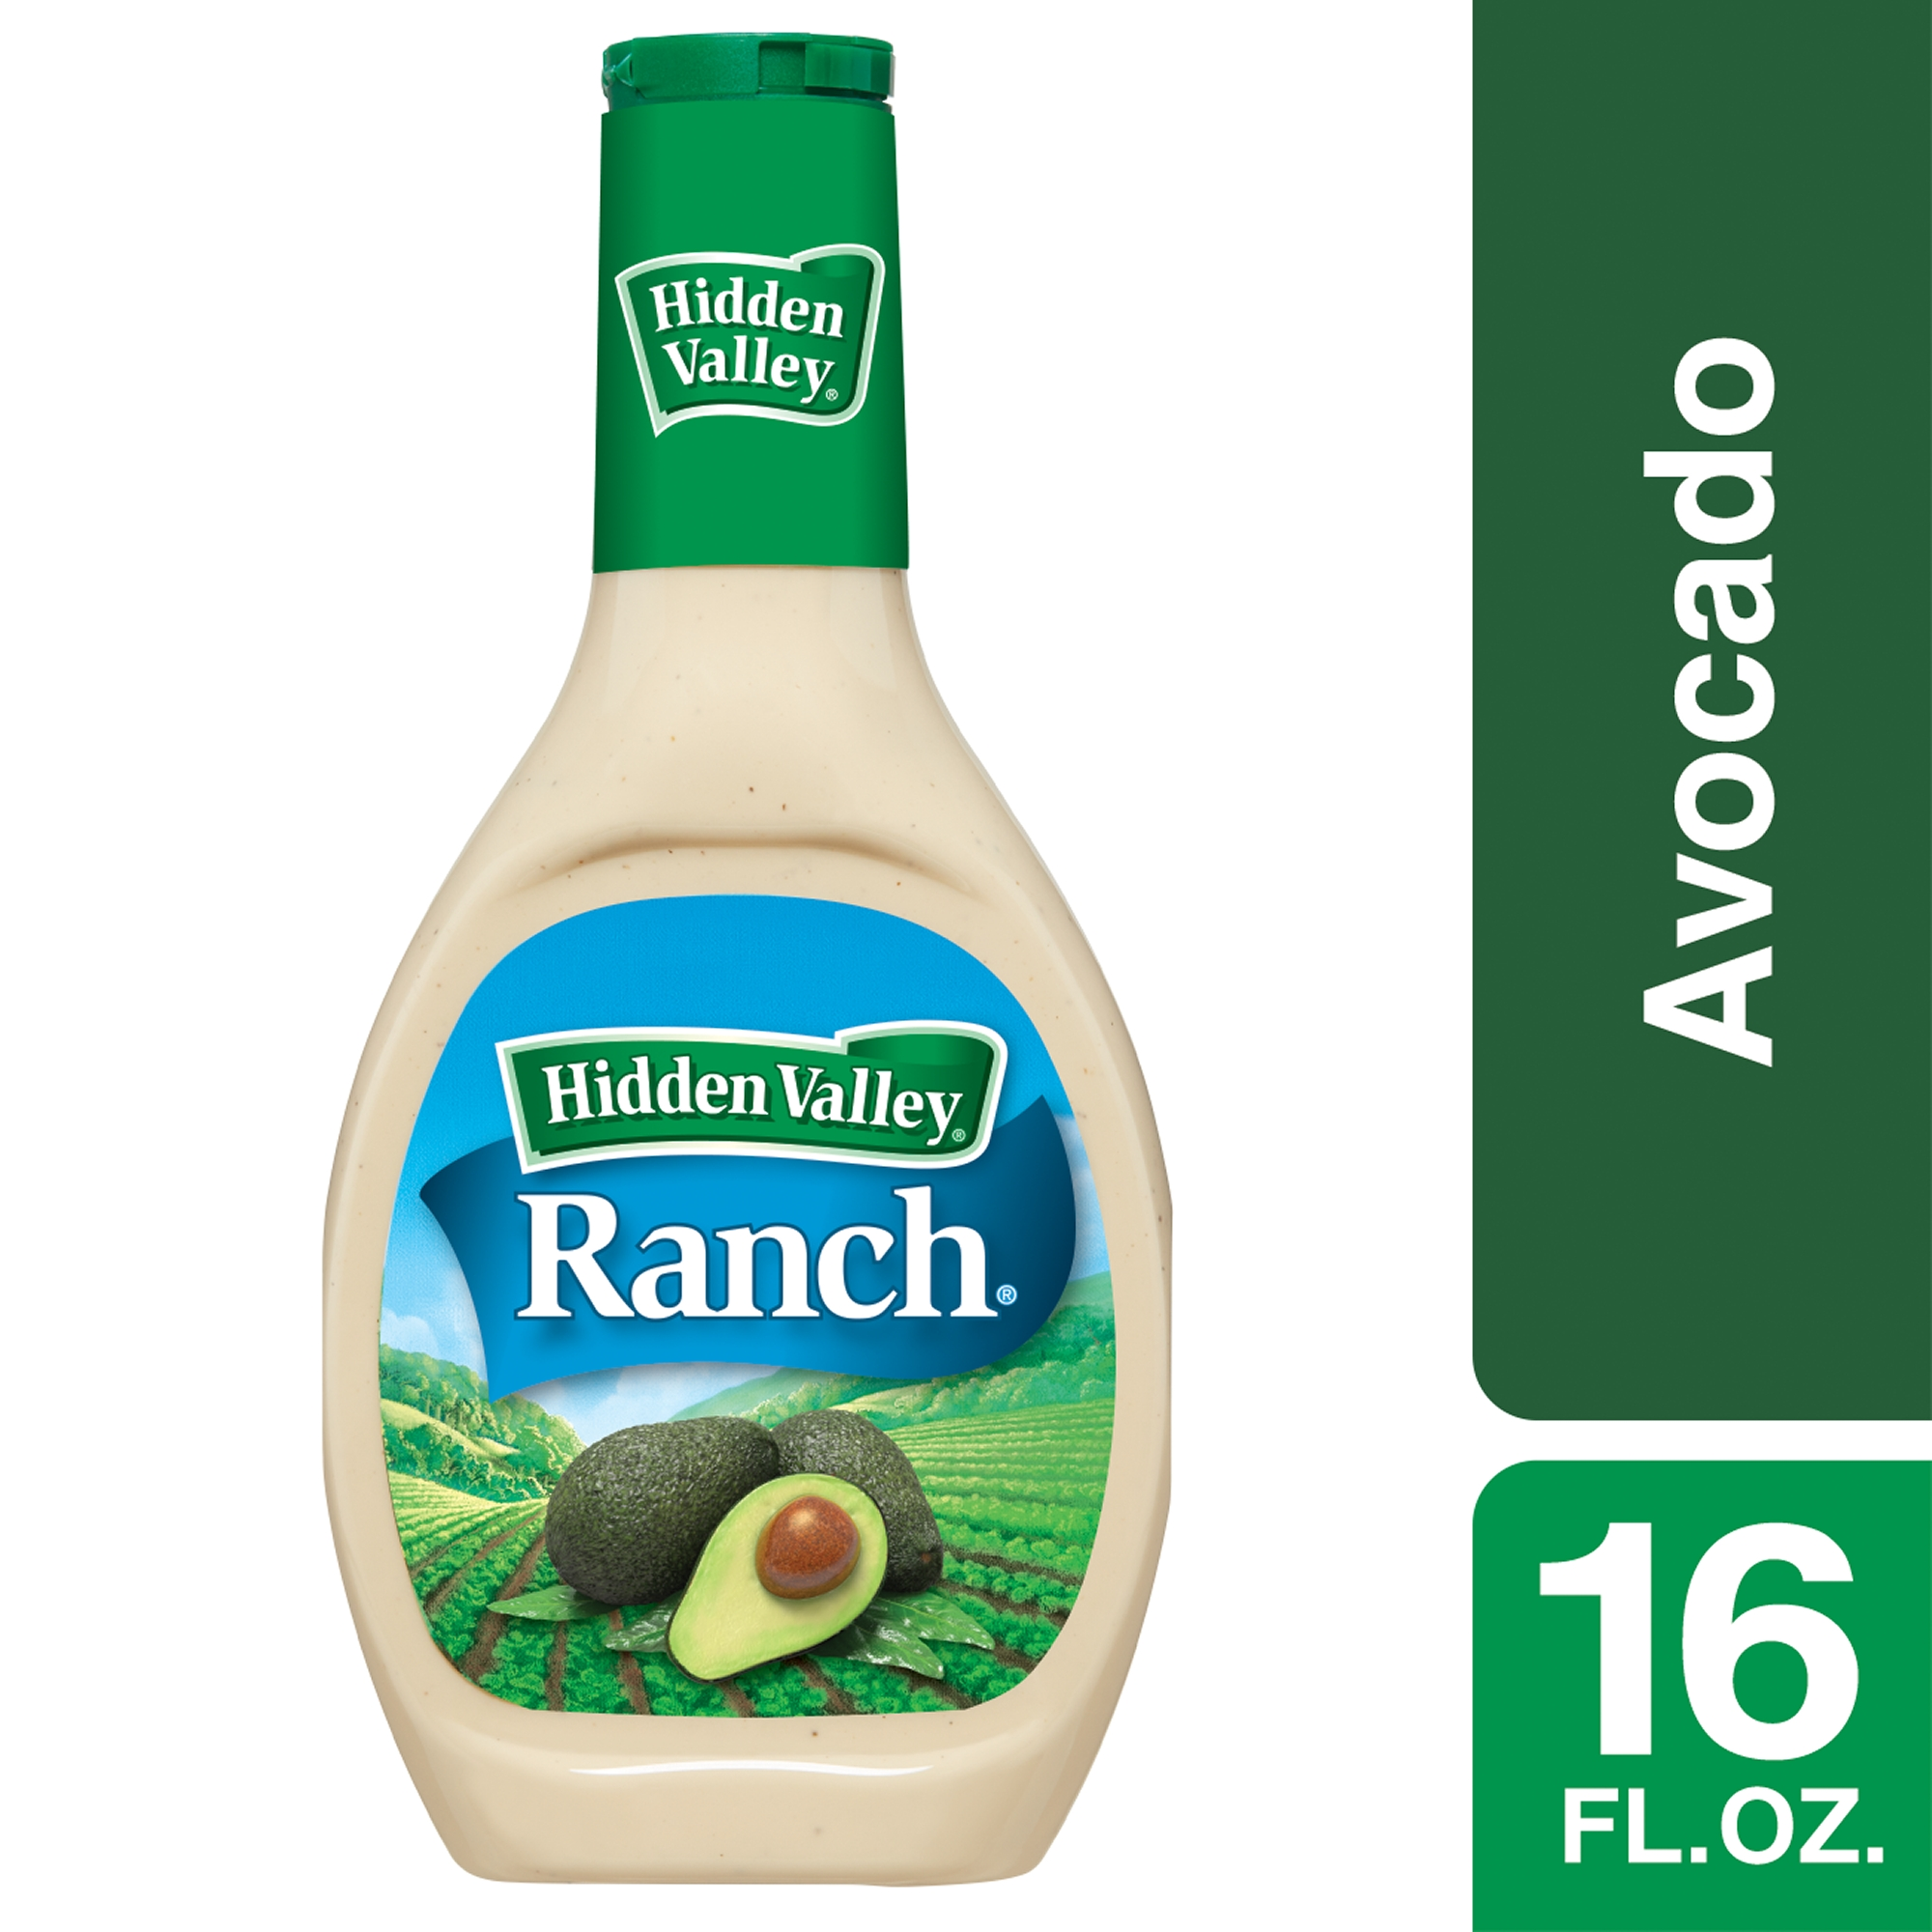 Hidden Valley Avocado Ranch Salad Dressing & Topping, Gluten Free - 16 oz Bottle